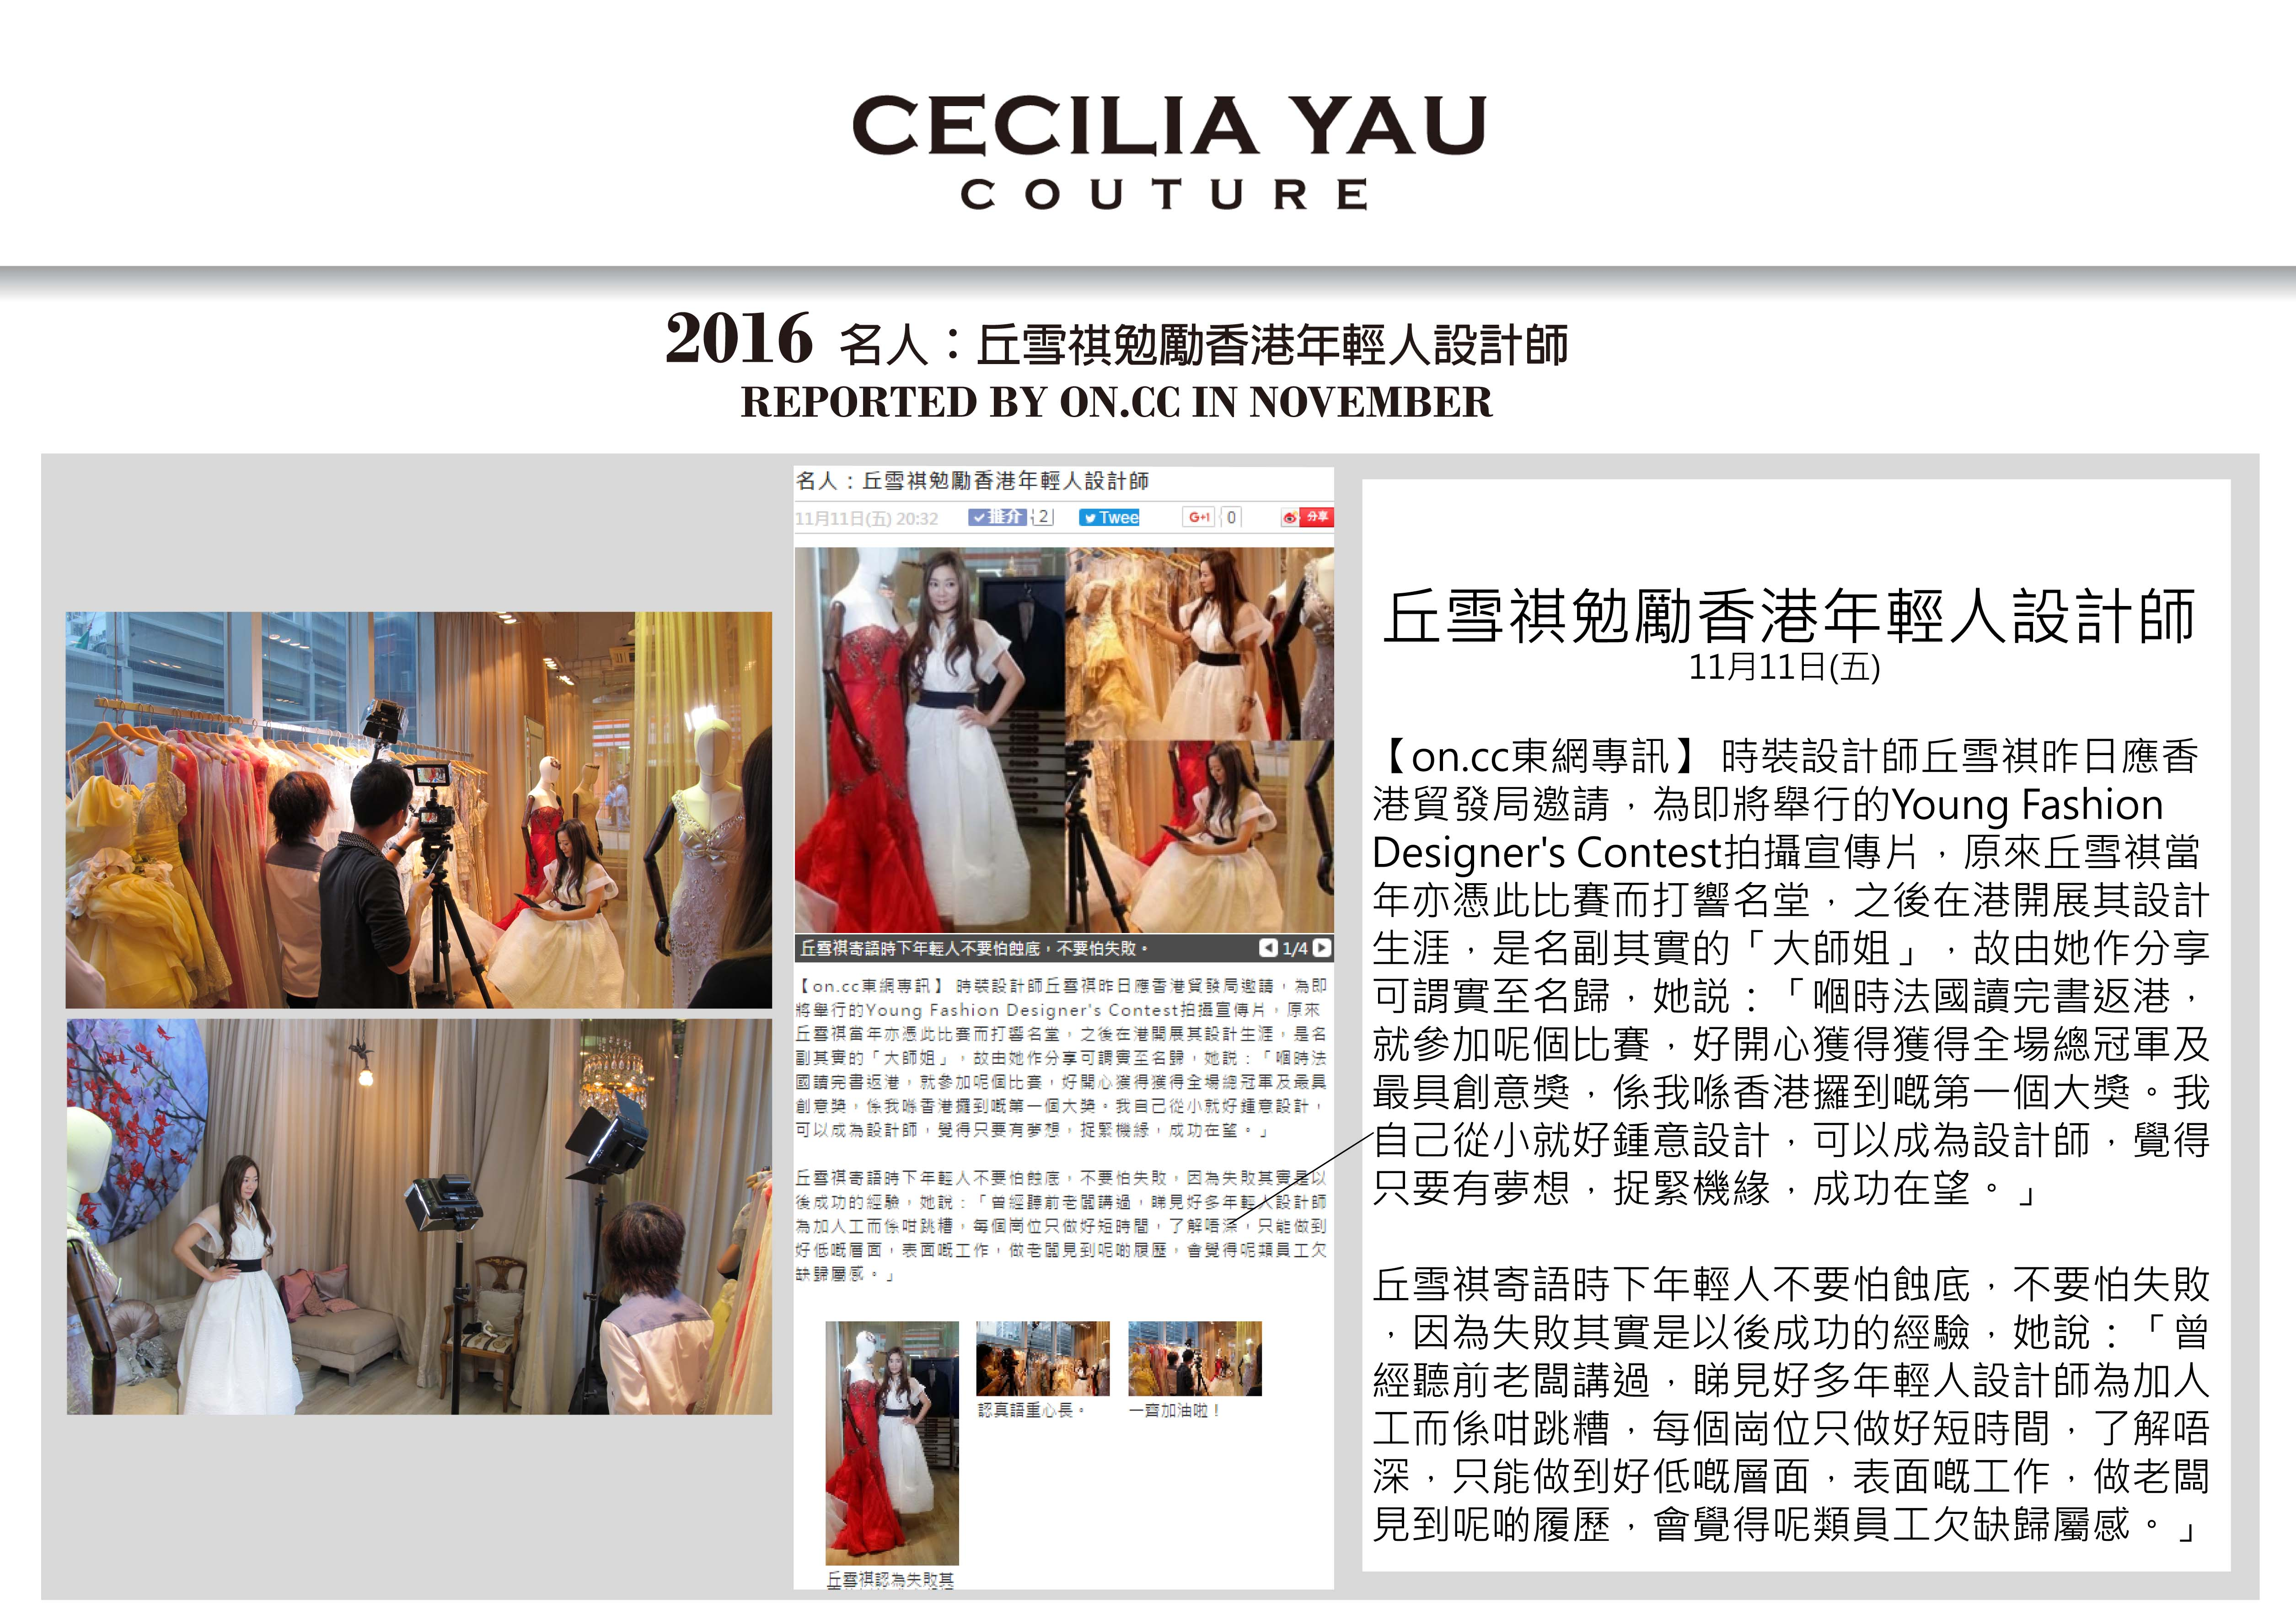 Cecilia encouraged young designers